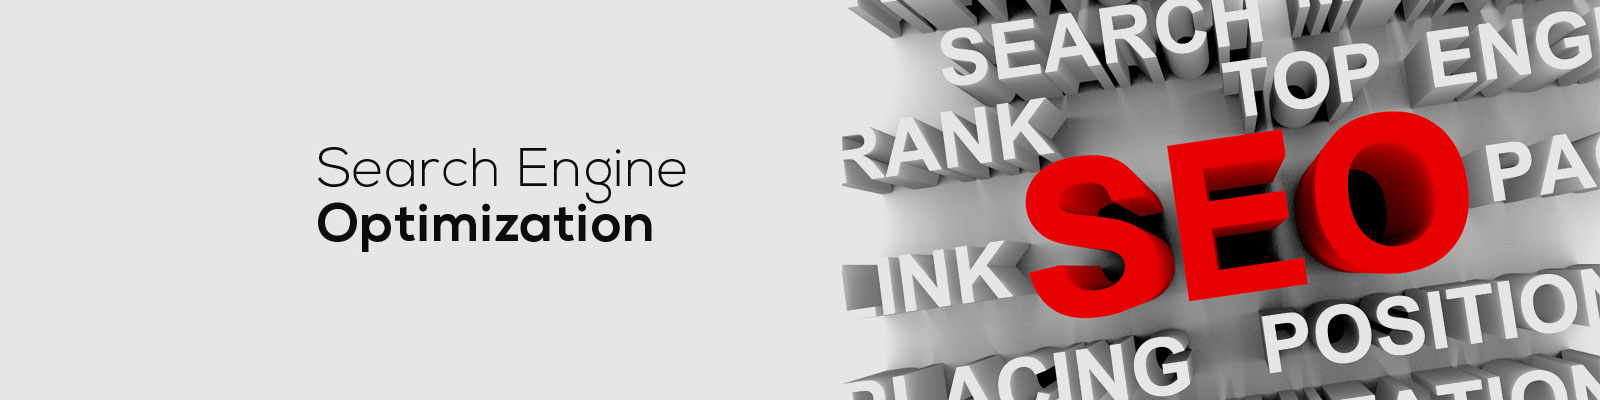 Search Engine Optimization - Internet Design Pros